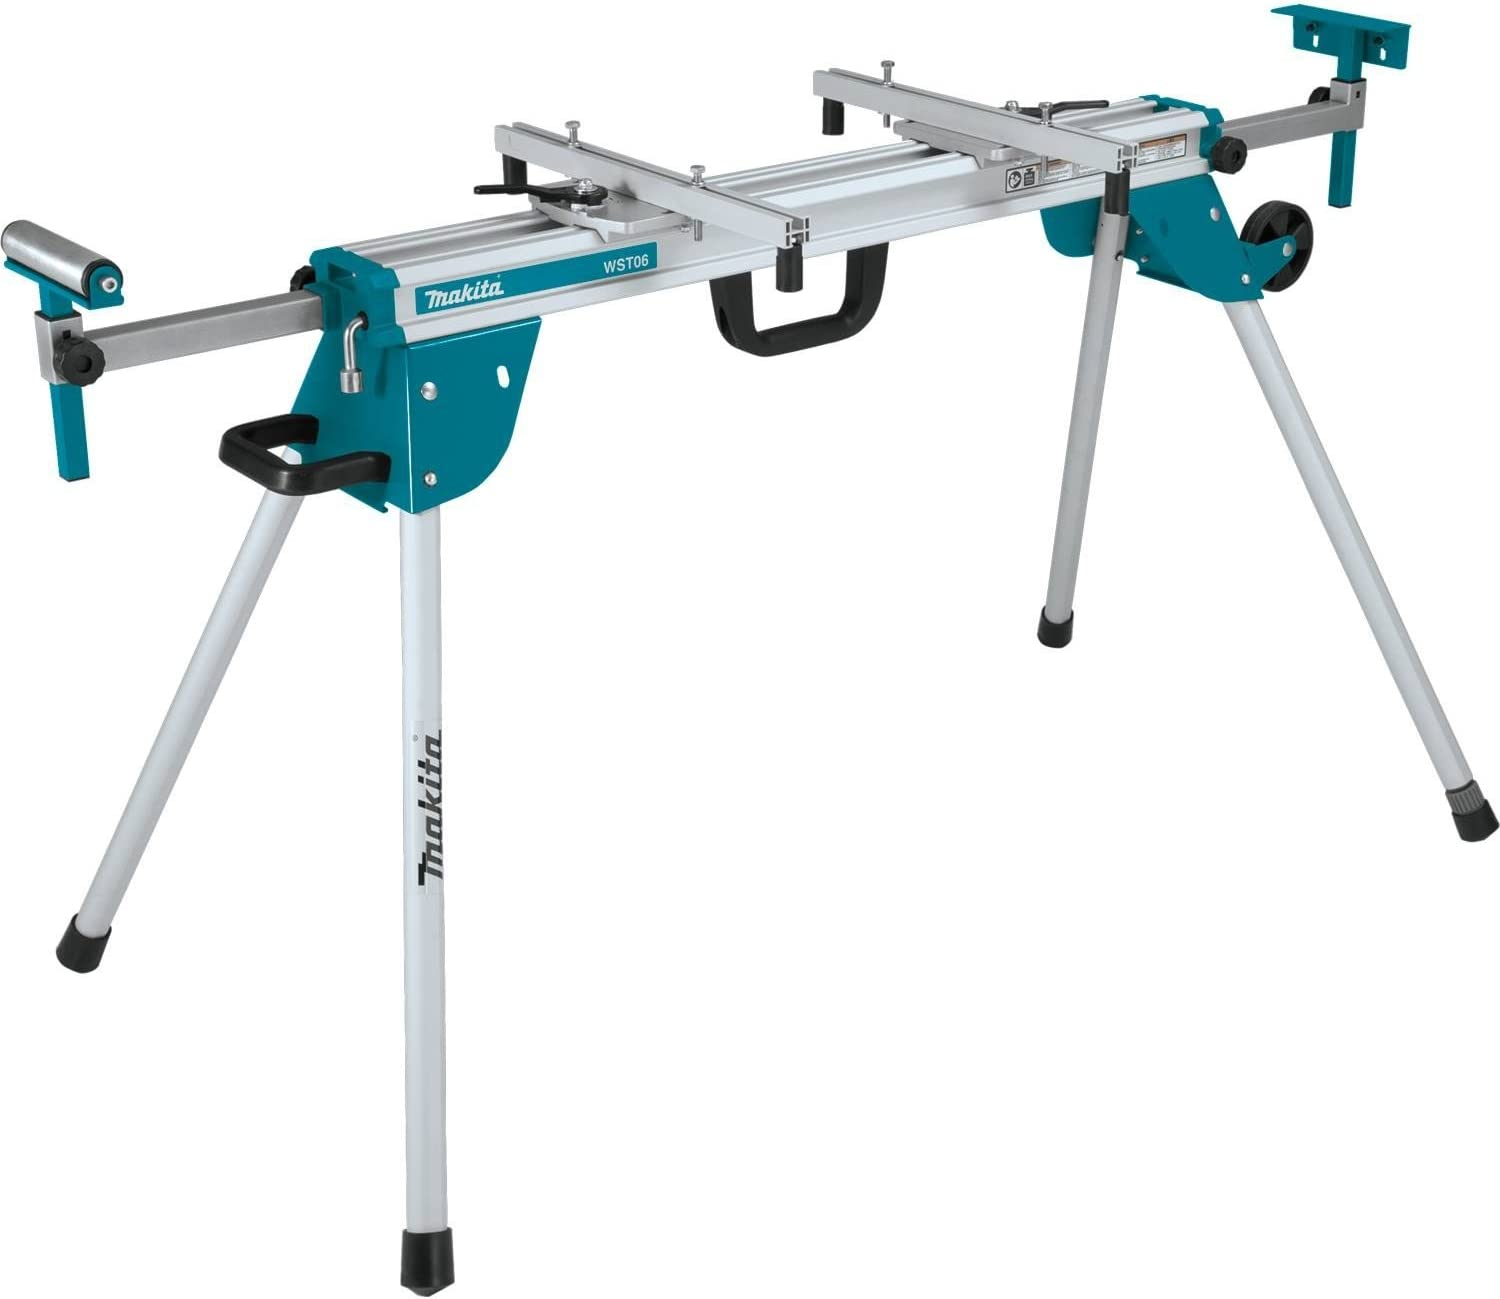 Best miter saw stand: Makita WST06 Compact Folding Miter Saw Stand